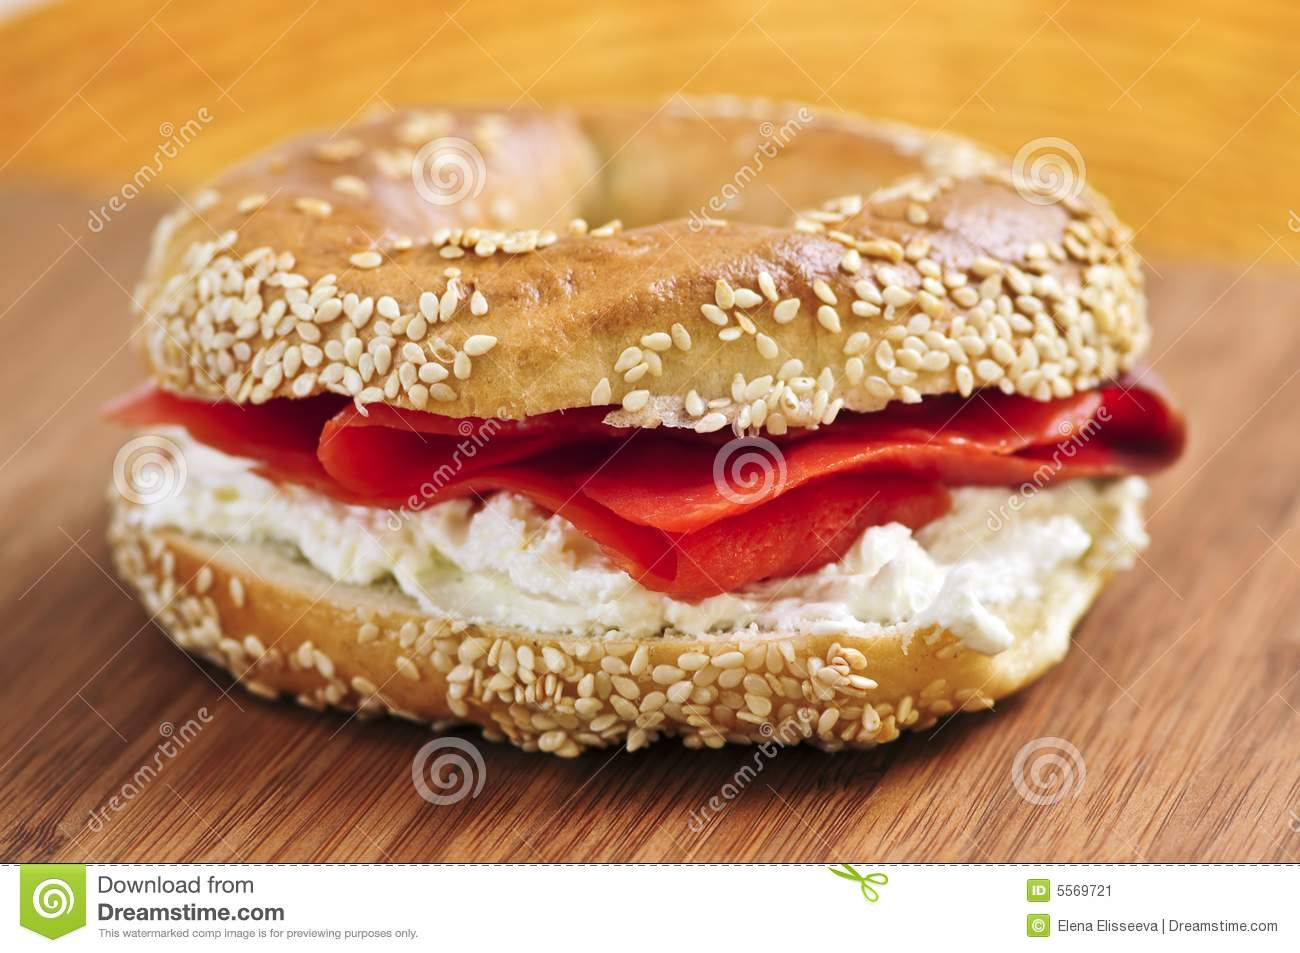 Bagel With Smoked Salmon And Cream Cheese Stock Image - Image: 5569721